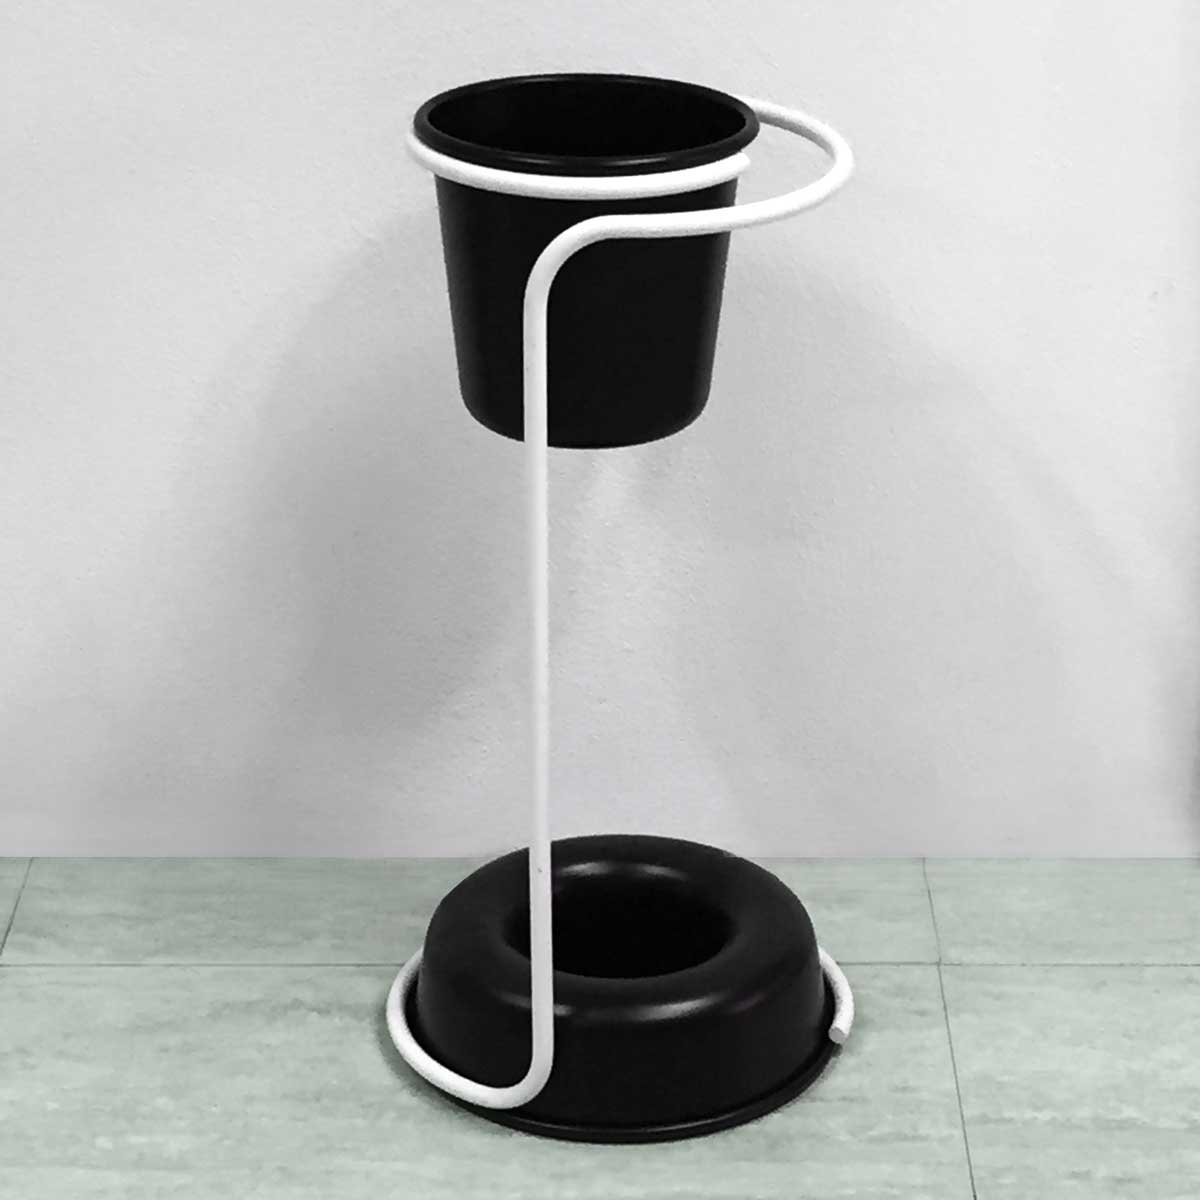 Francesco-Ruffa_Officinanove_Boa_umbrellastand_design_2